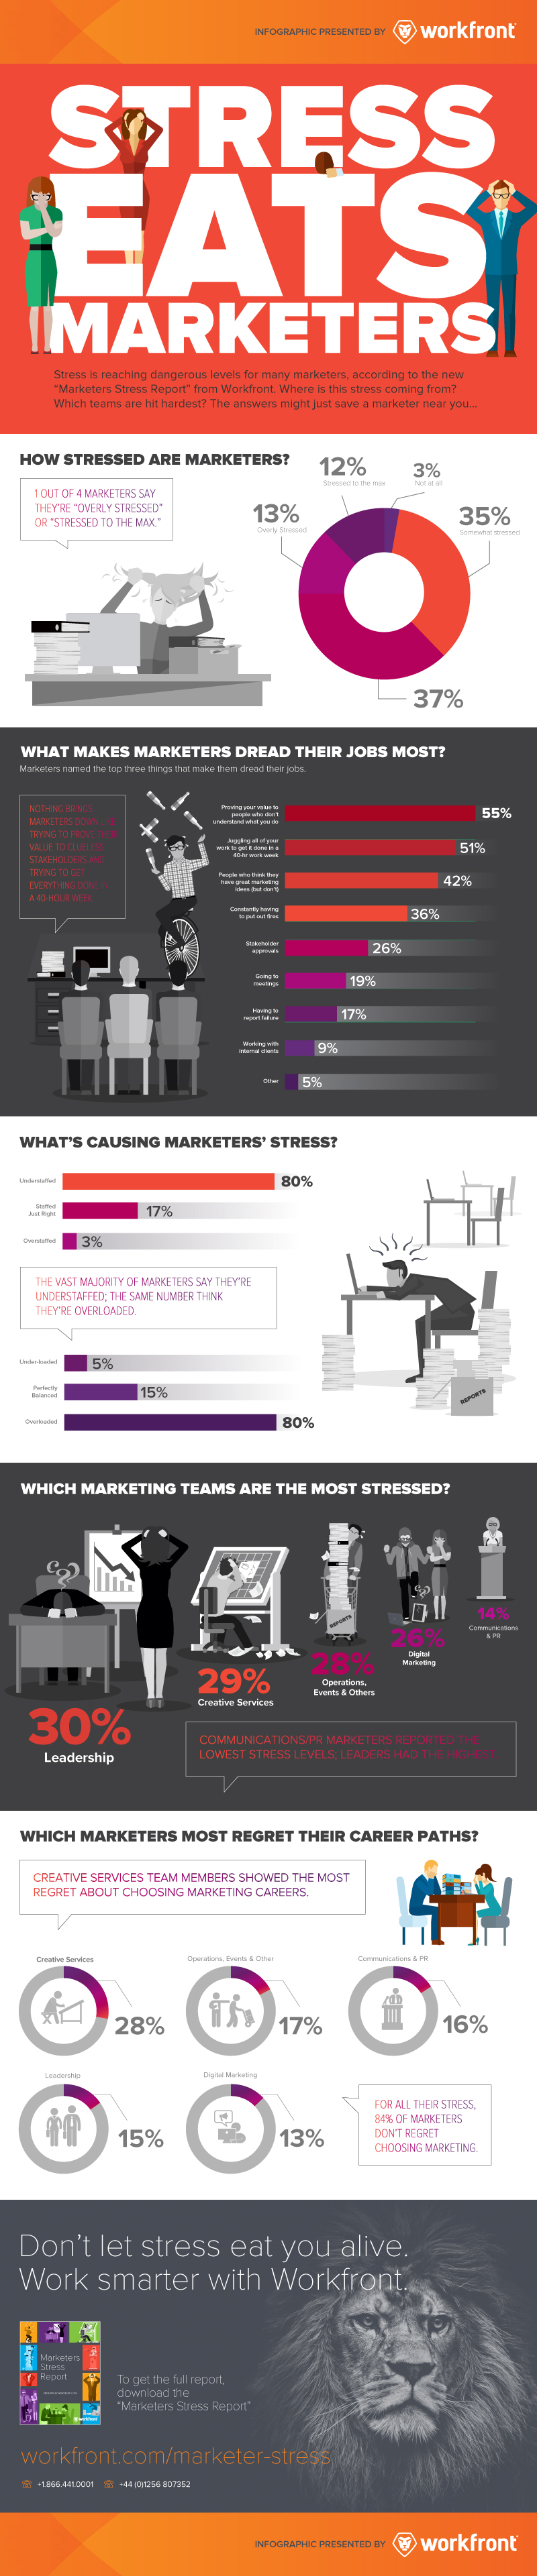 infographic marketer stress survey